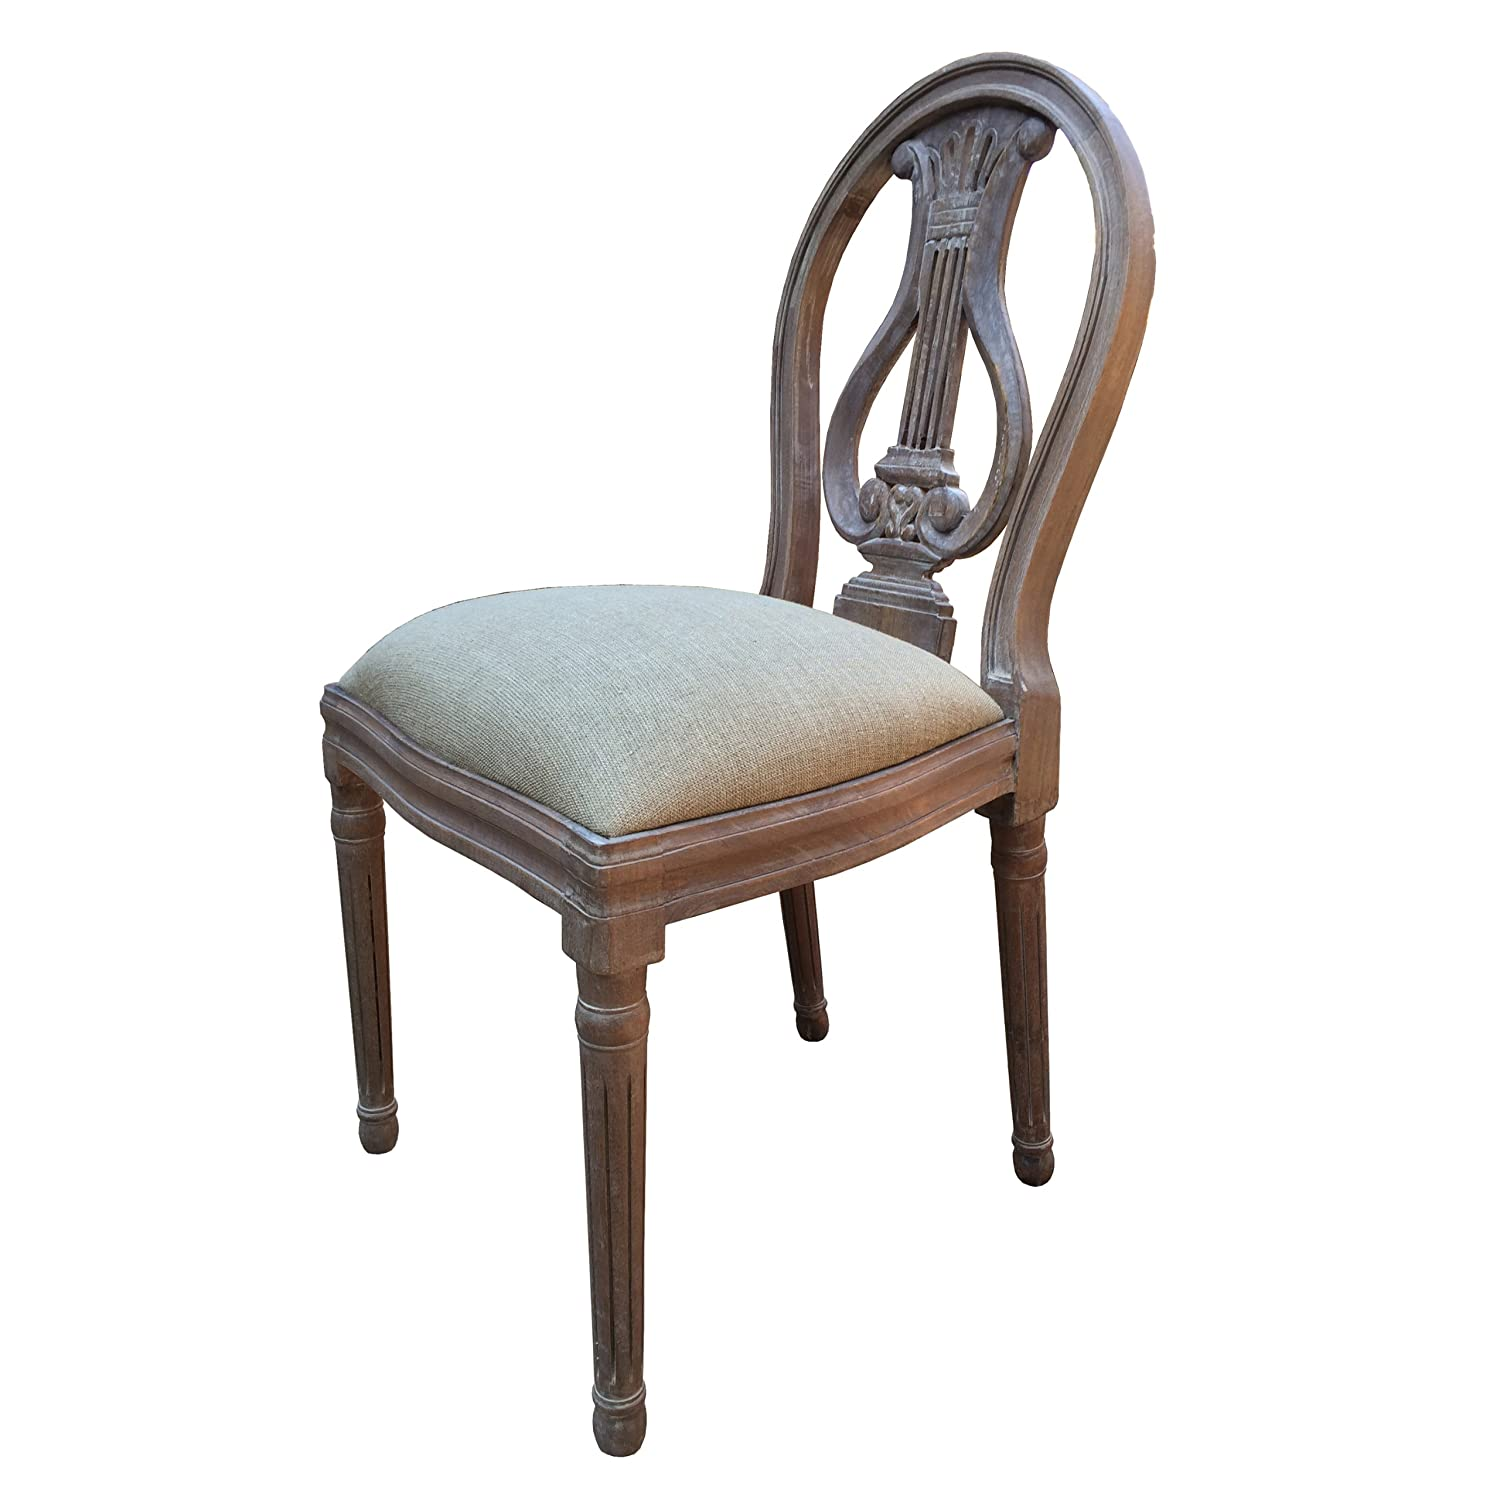 A French Style Shabby Chic Dining Chair in Ash Finish Upholstery